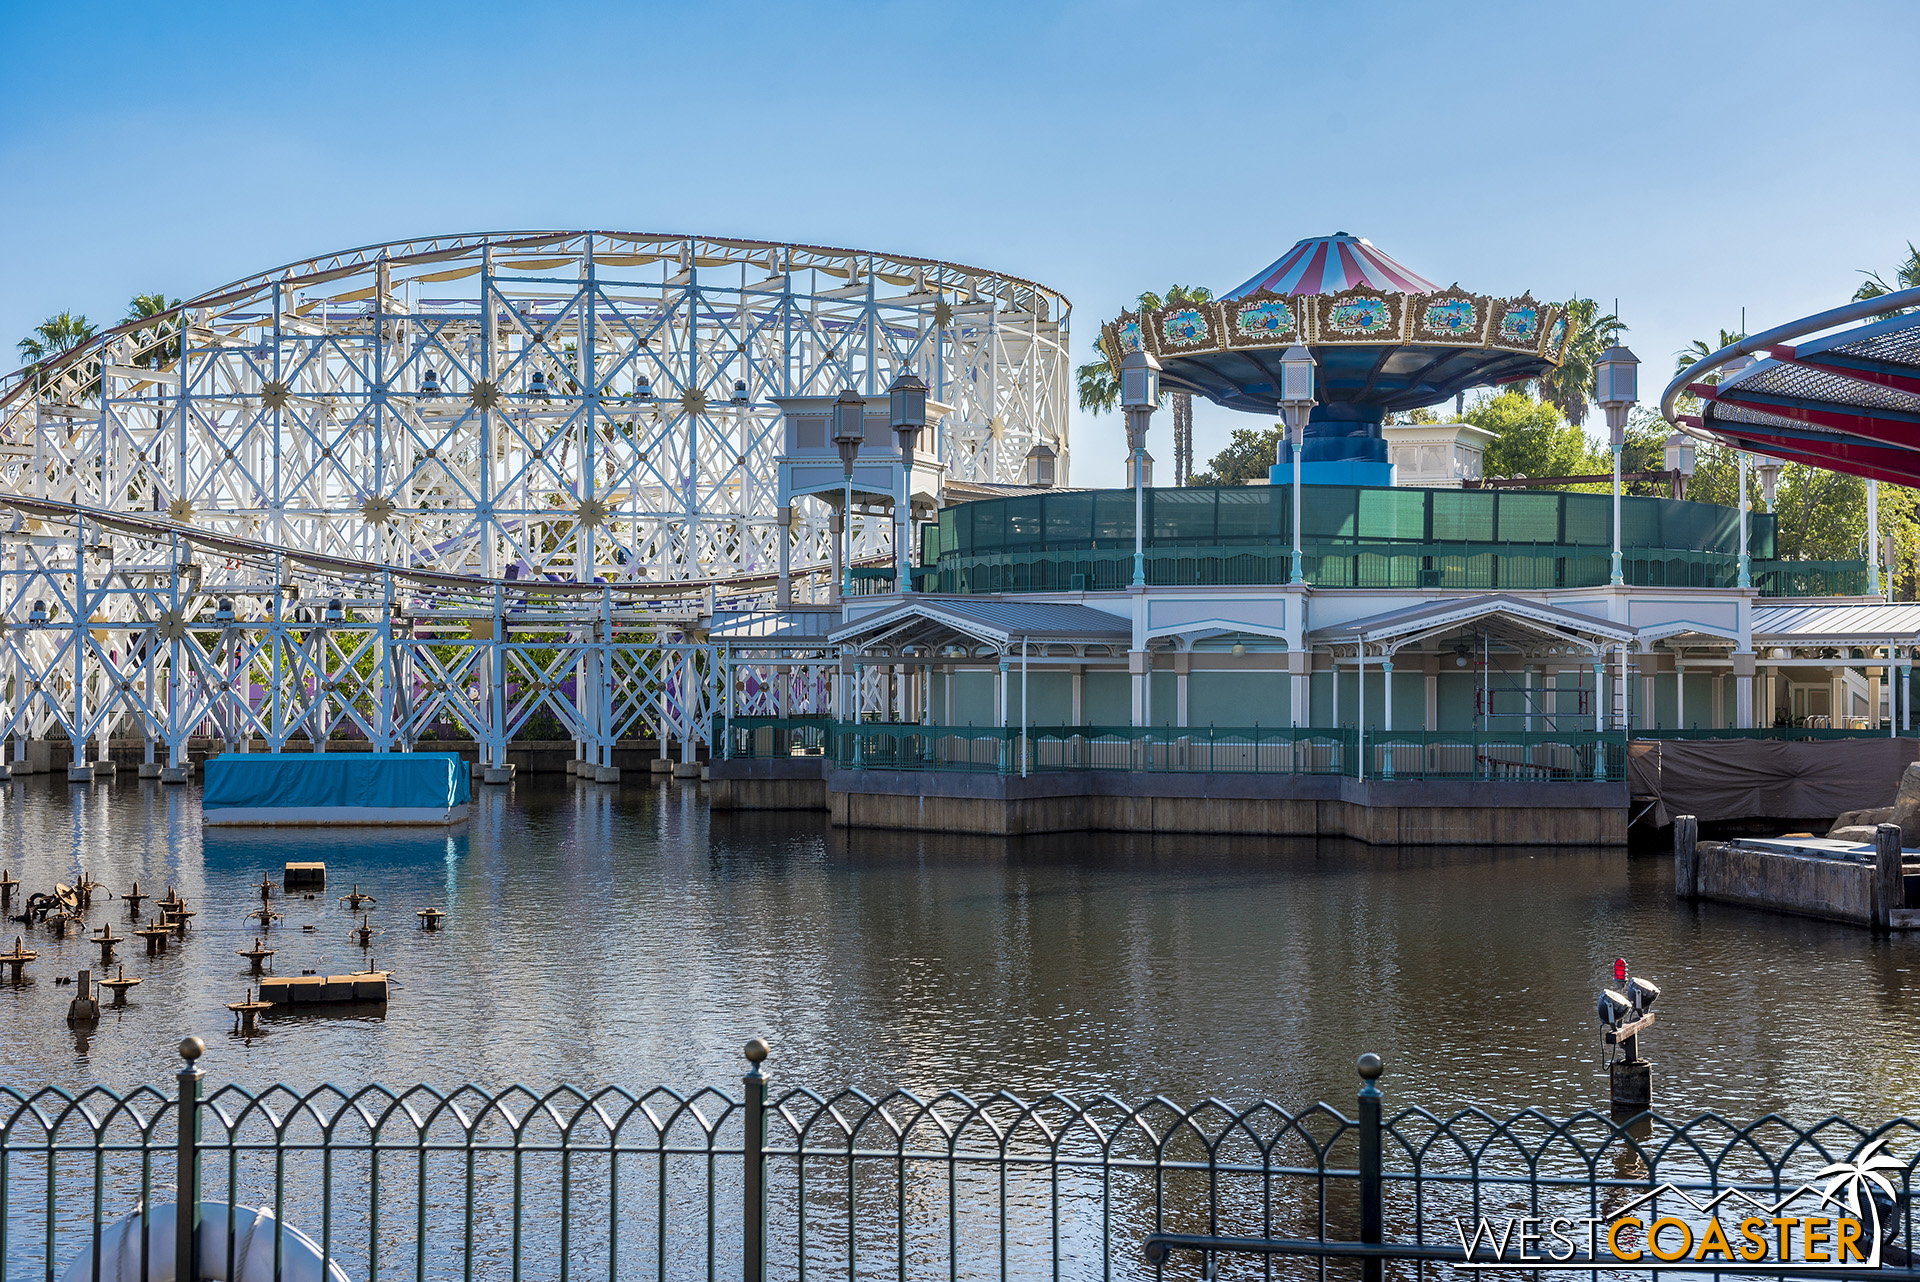 Meanwhile, the Silly Symphony Swings are nearing recompletion.